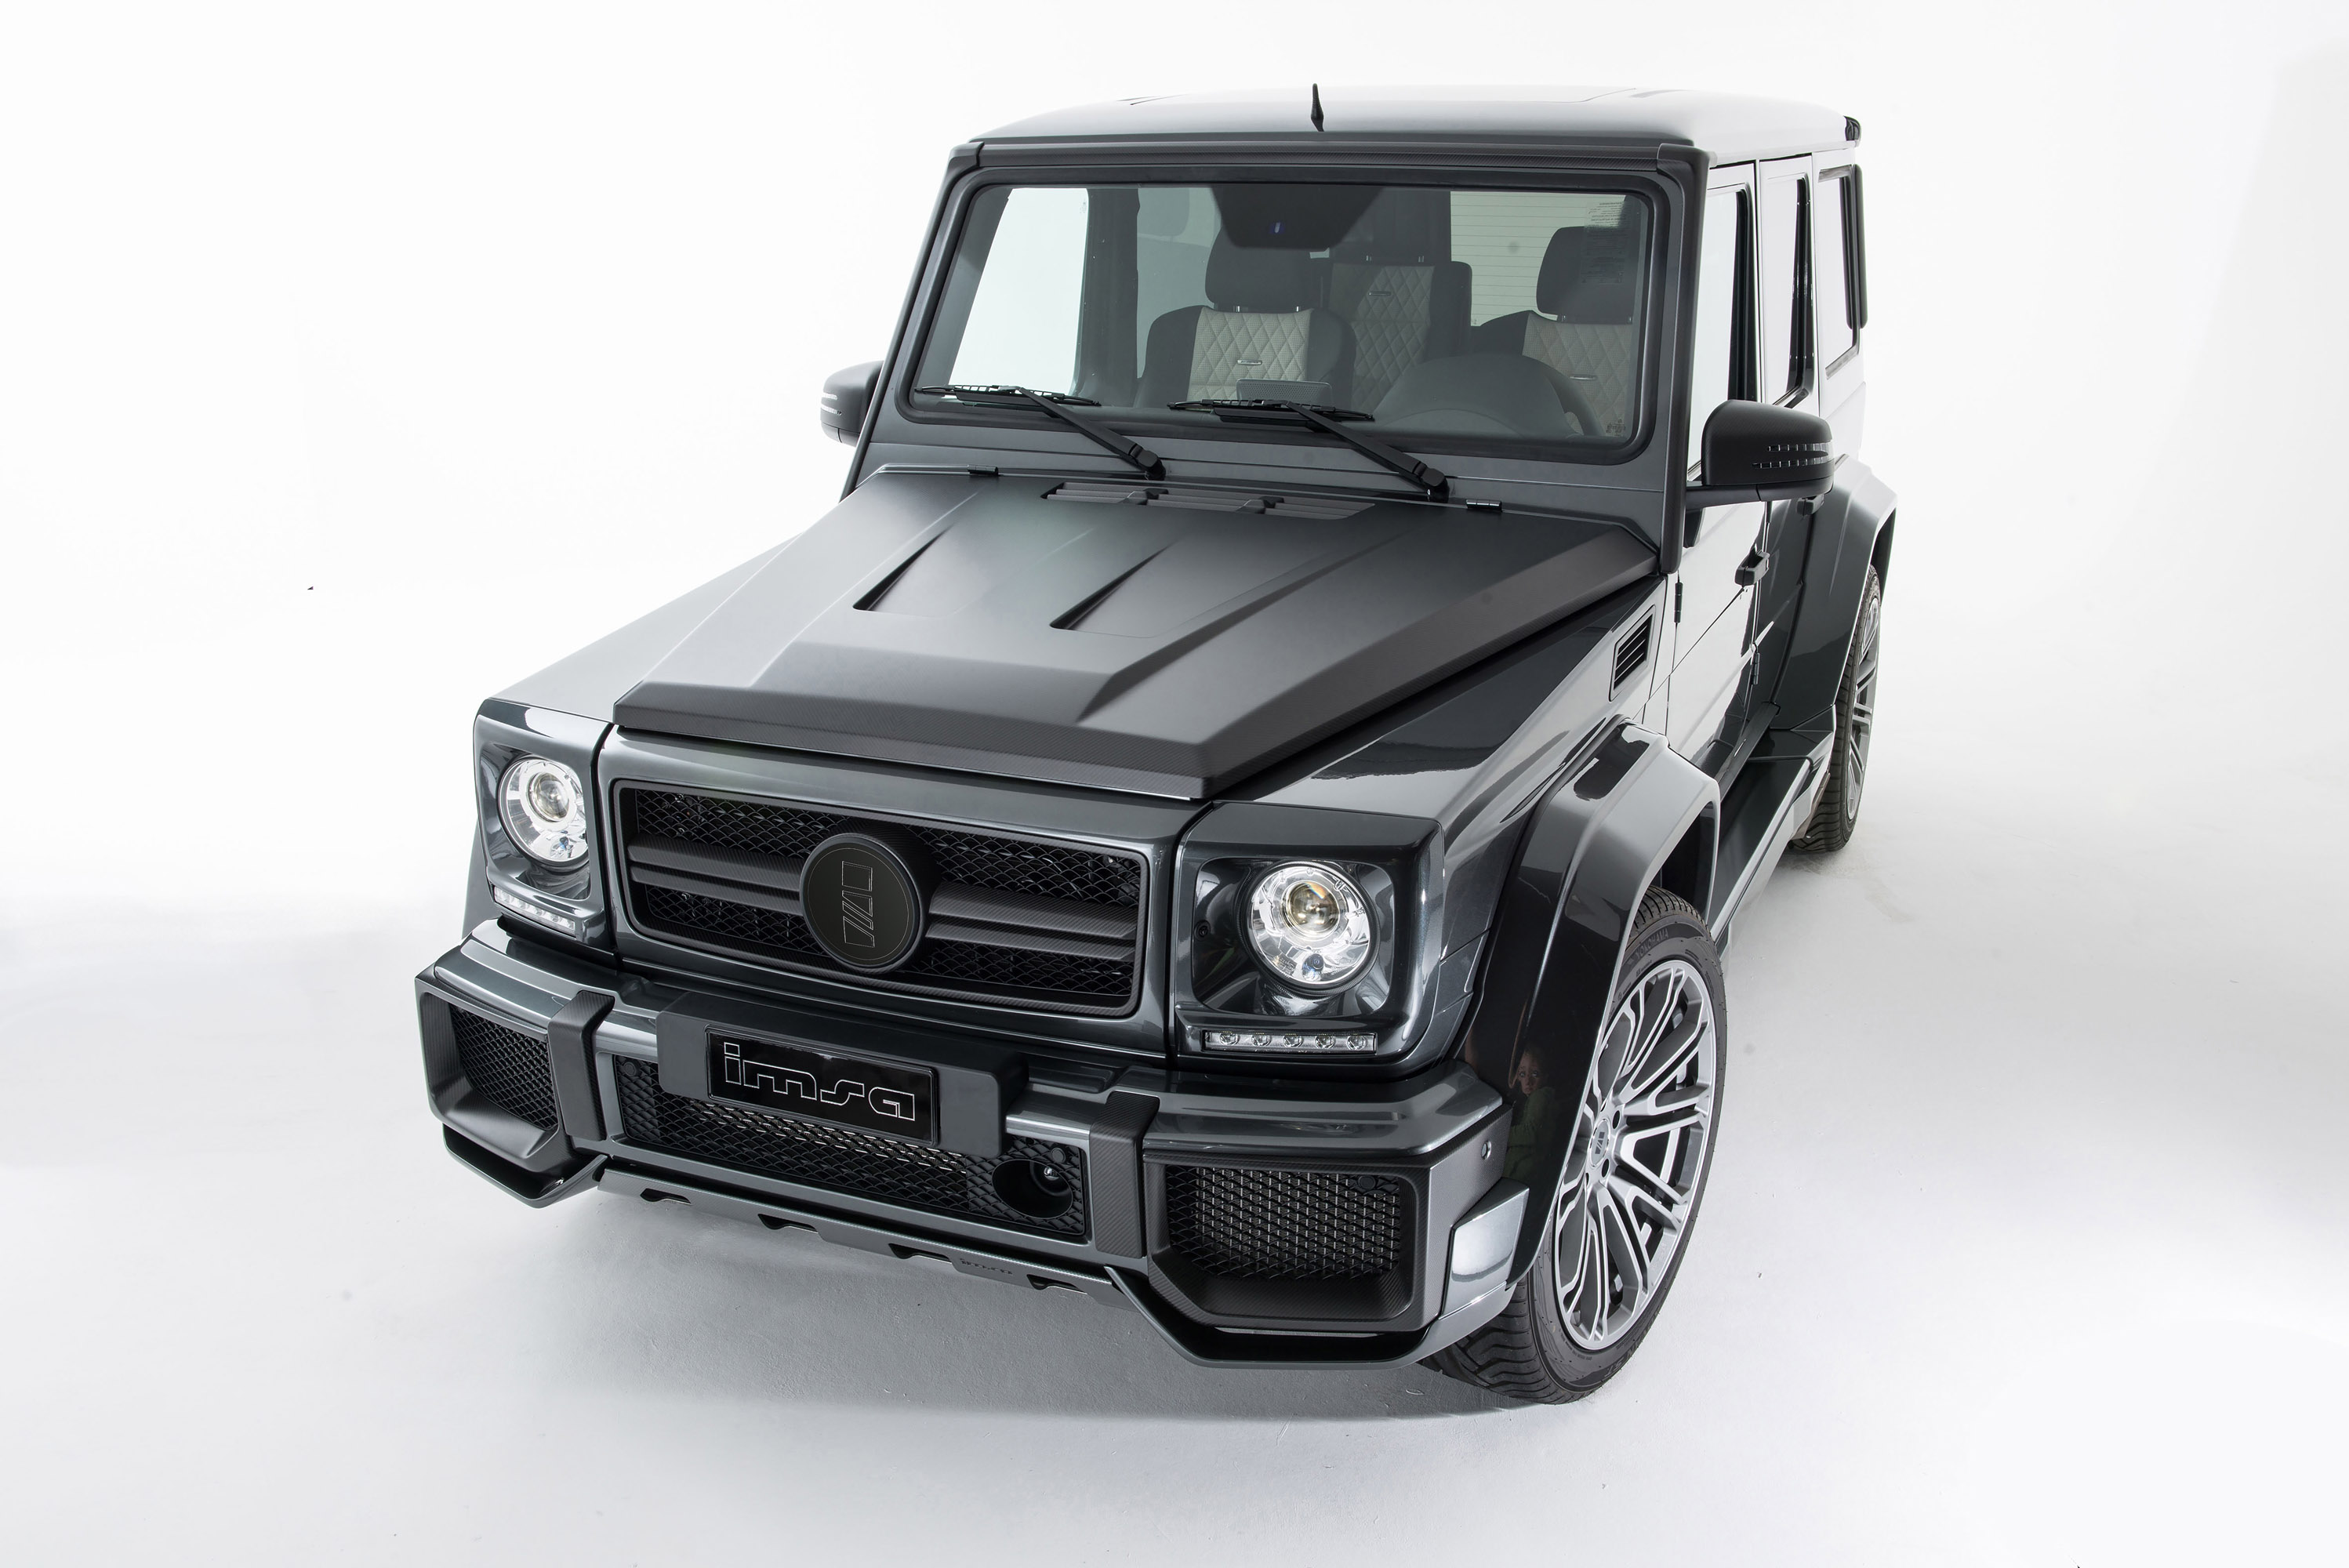 Imsa unveils stylish mercedes benz g63 amg for Mercedes benz g 63